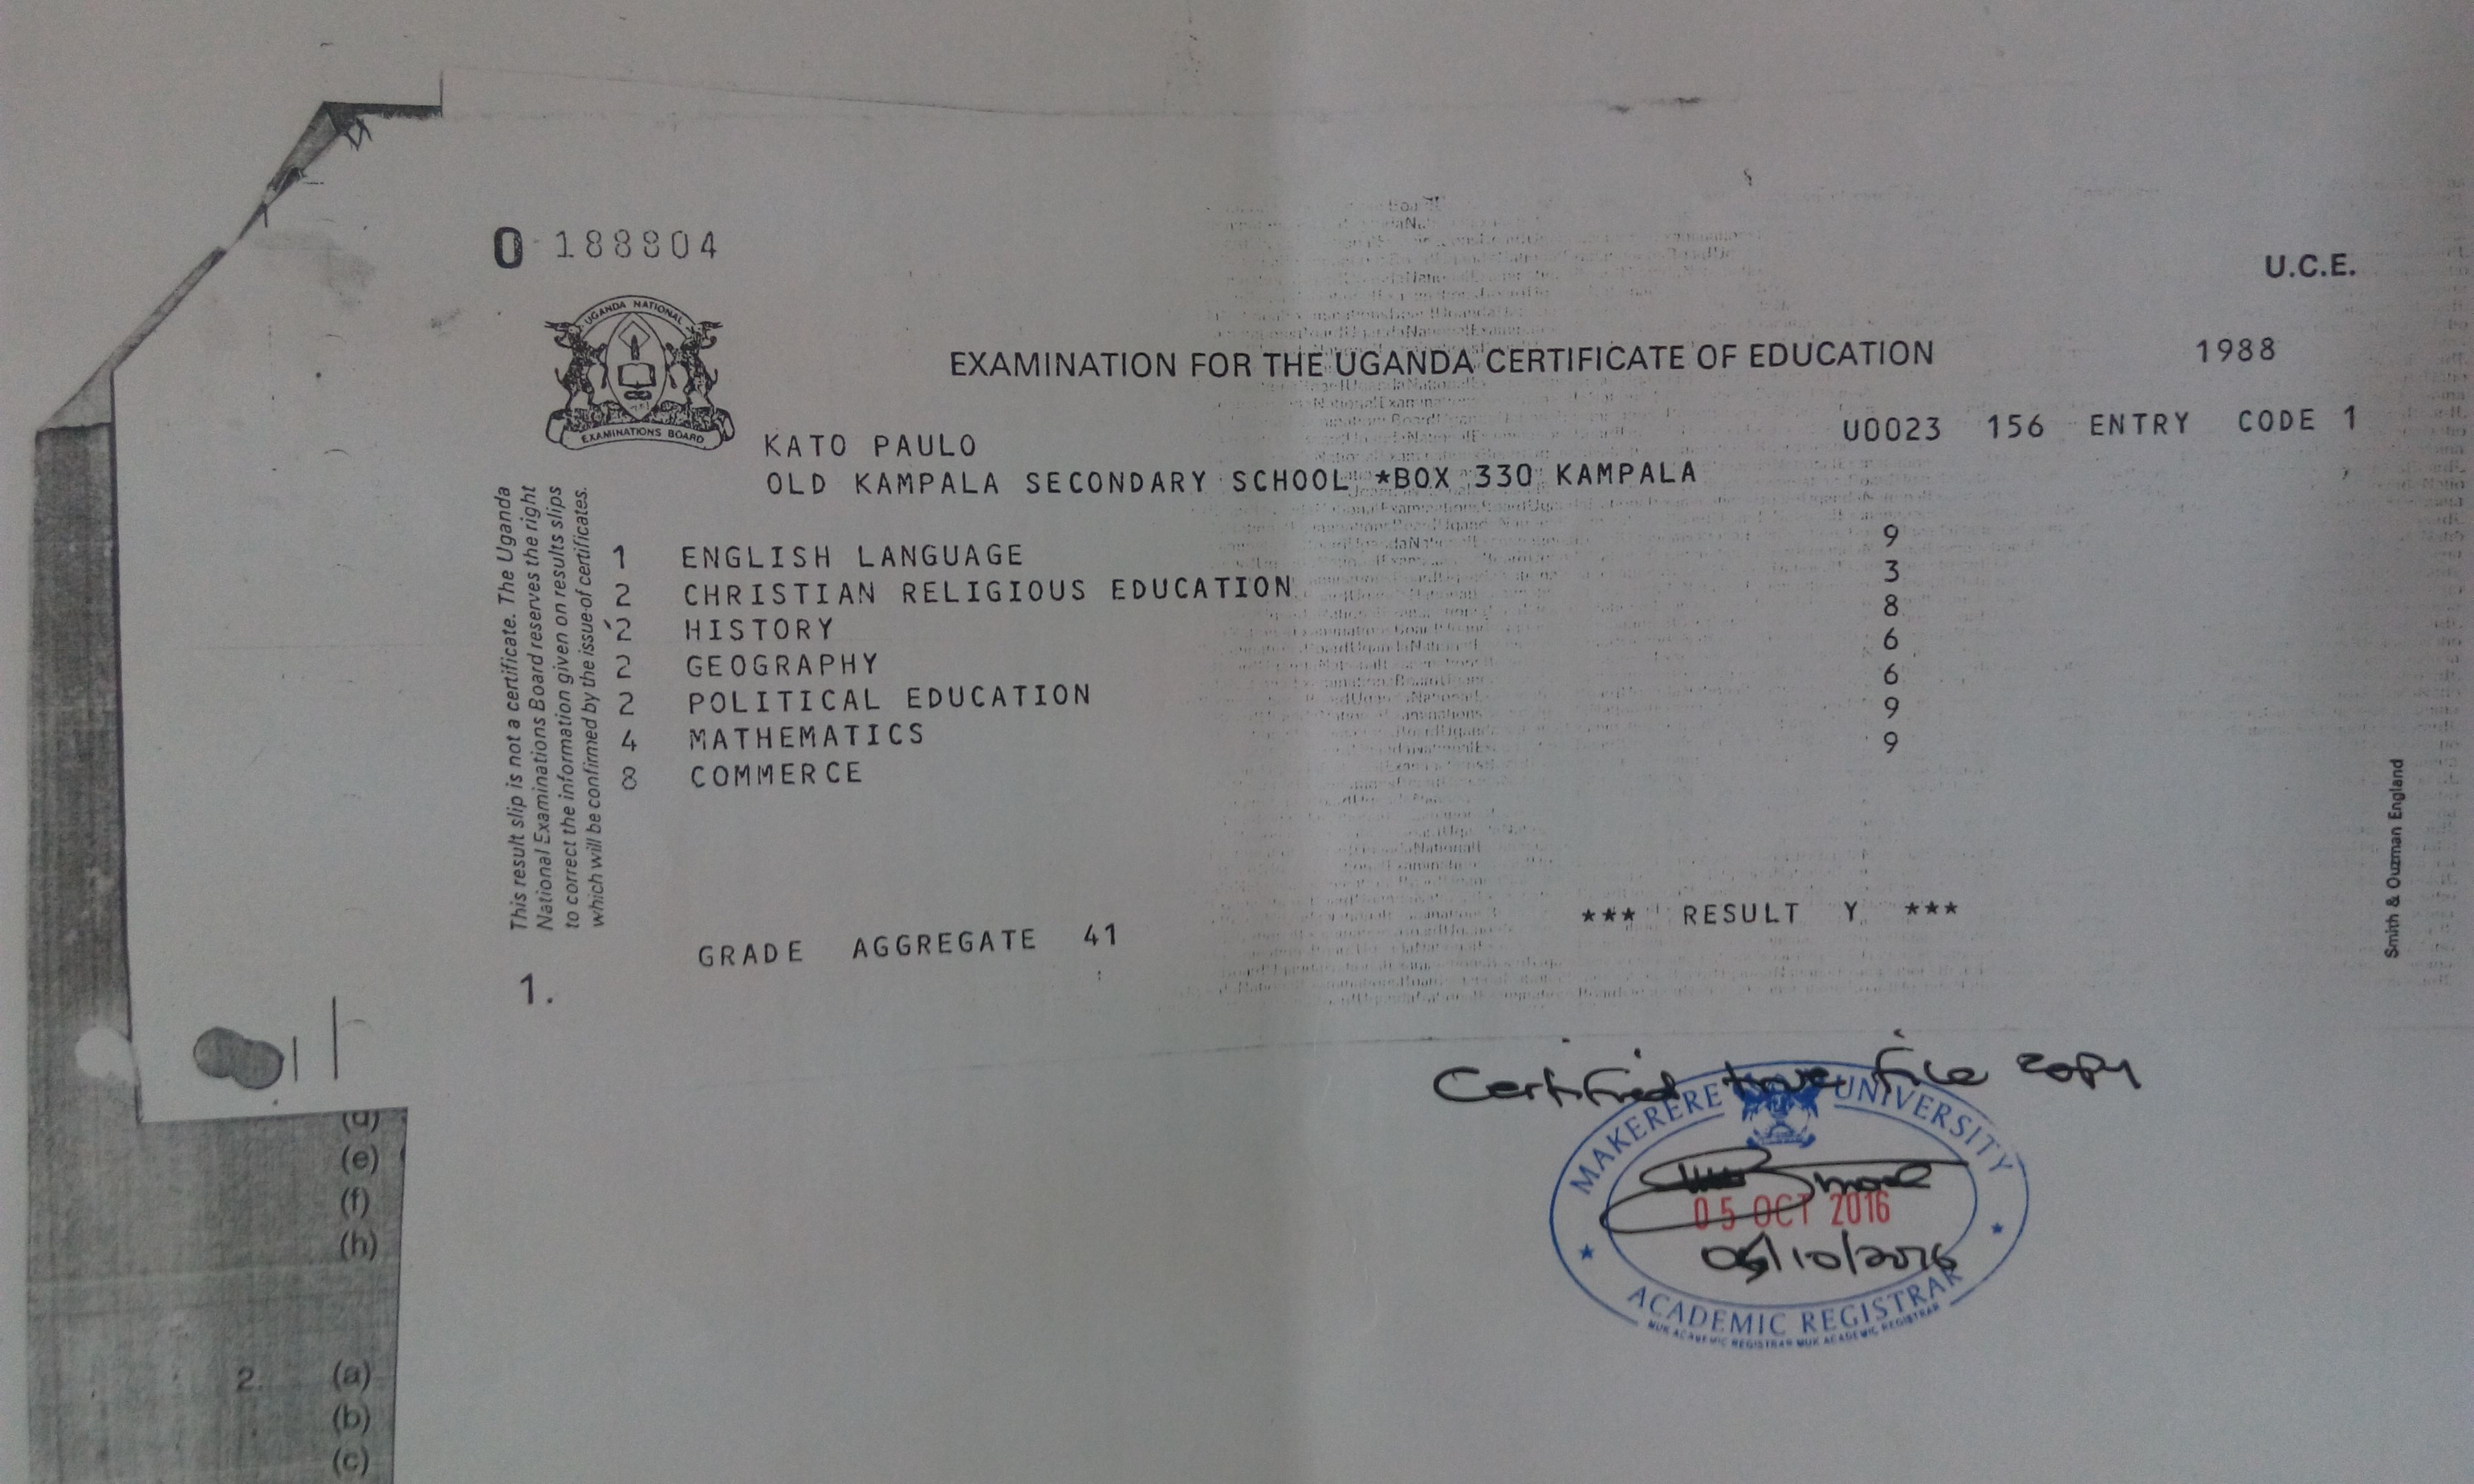 The UCE Certificate Which Kato Lubwama Used to Apply For a Diploma at MAK